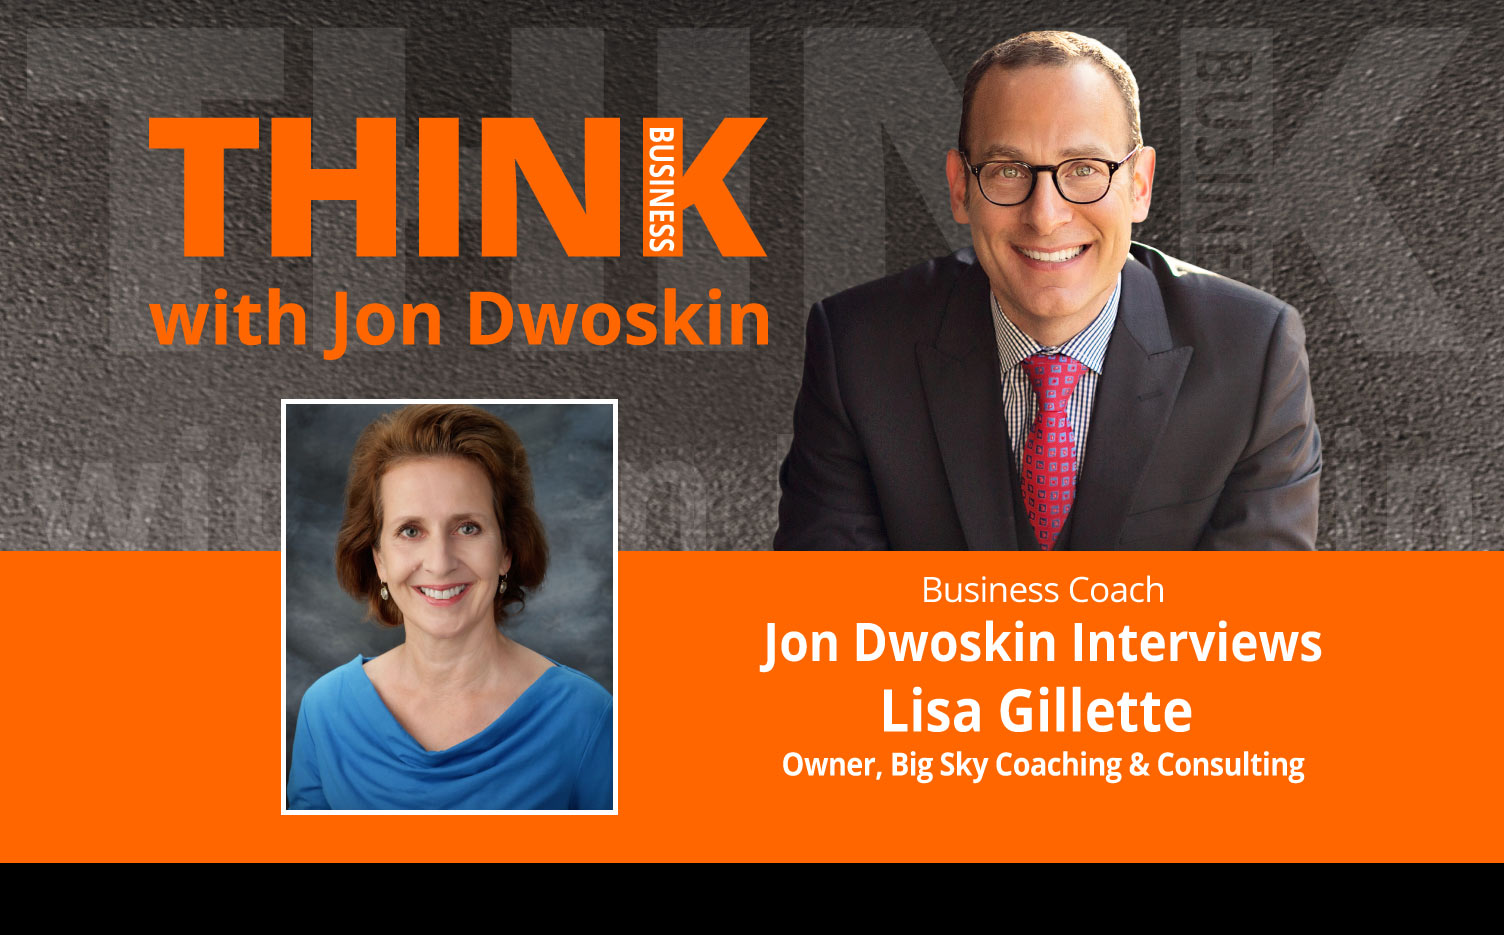 THINK Business Podcast: Jon Dwoskin Interviews Lisa Gillette, Owner, Big Sky Coaching & Consulting